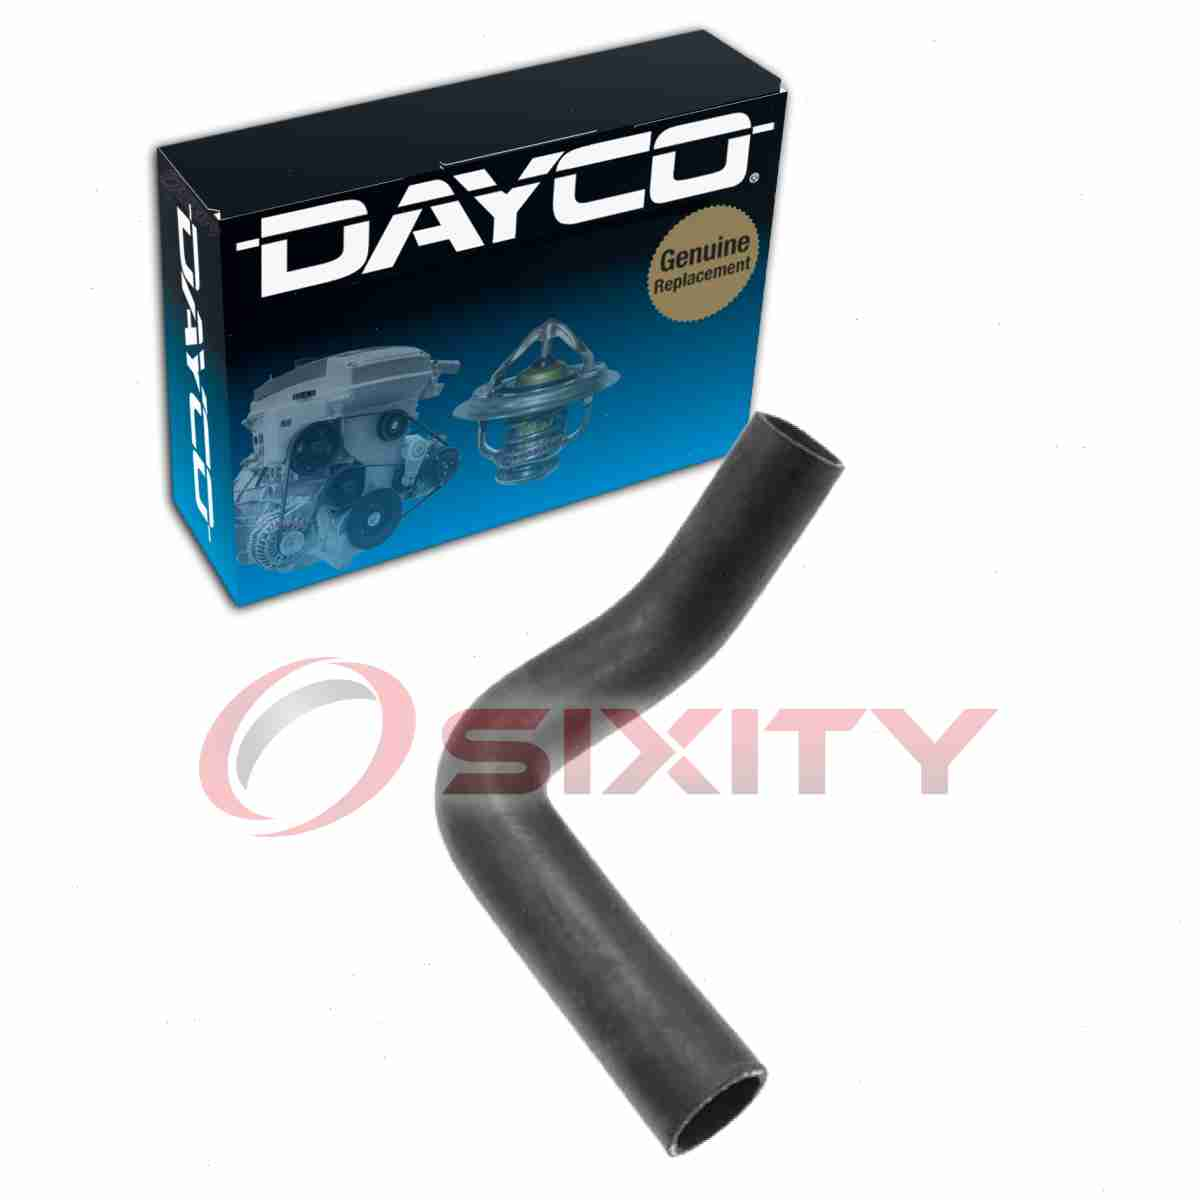 small resolution of details about dayco lower radiator hose for 1962 buick skylark engine coolant heating vn